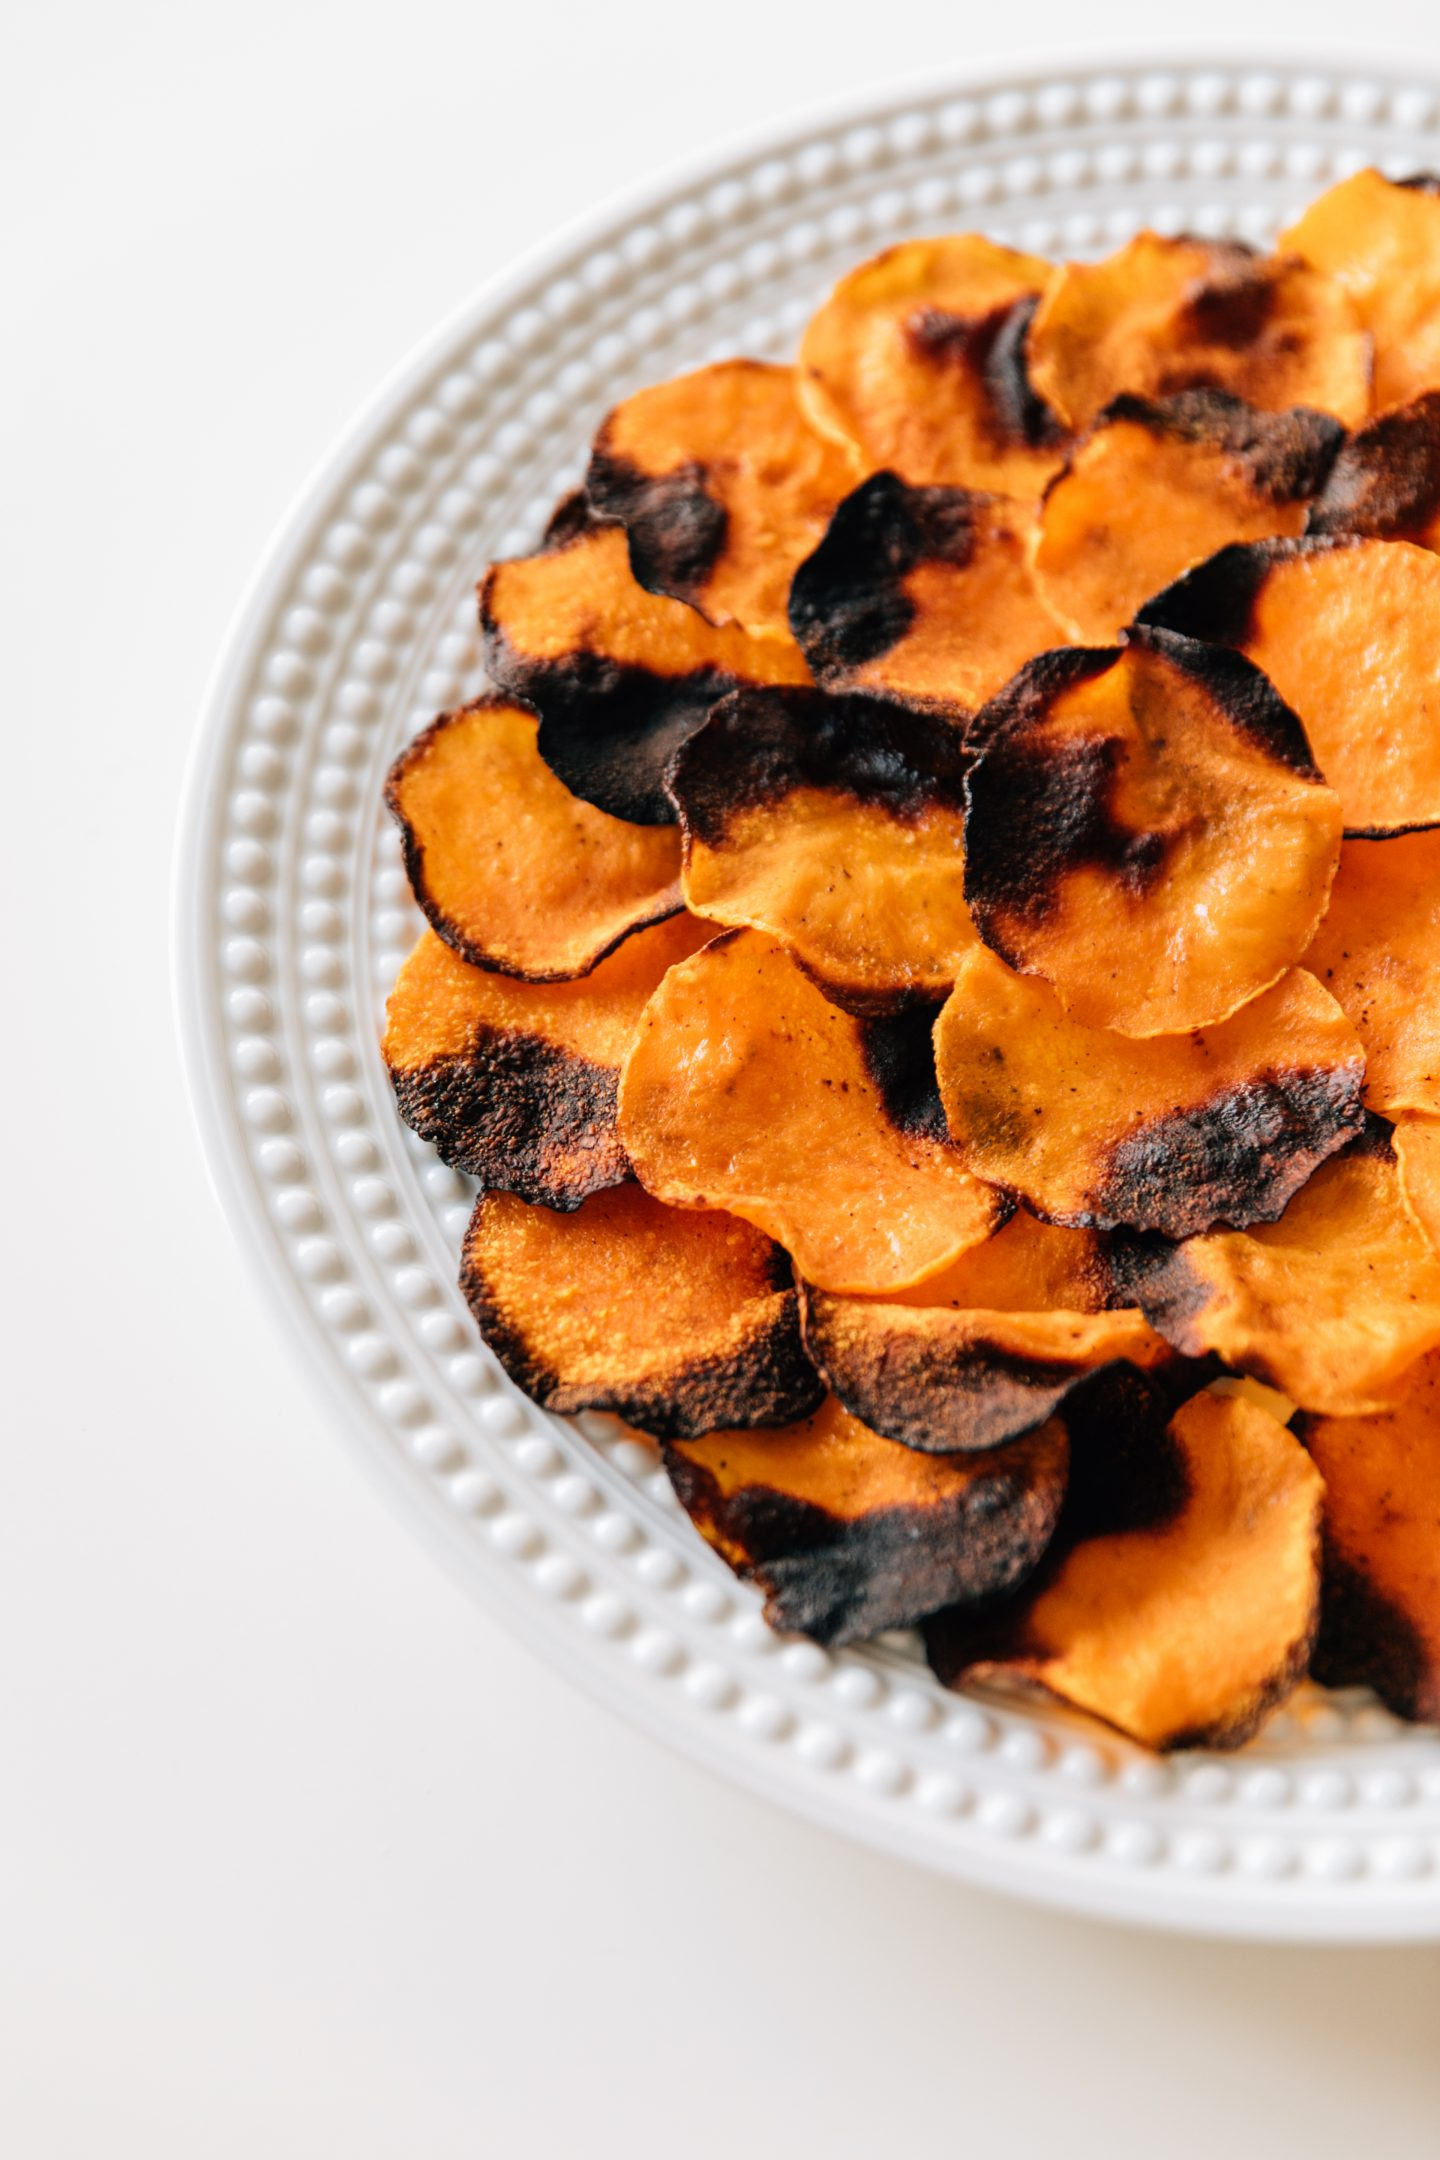 How to Prepare Vegetable Chips Without the Calories